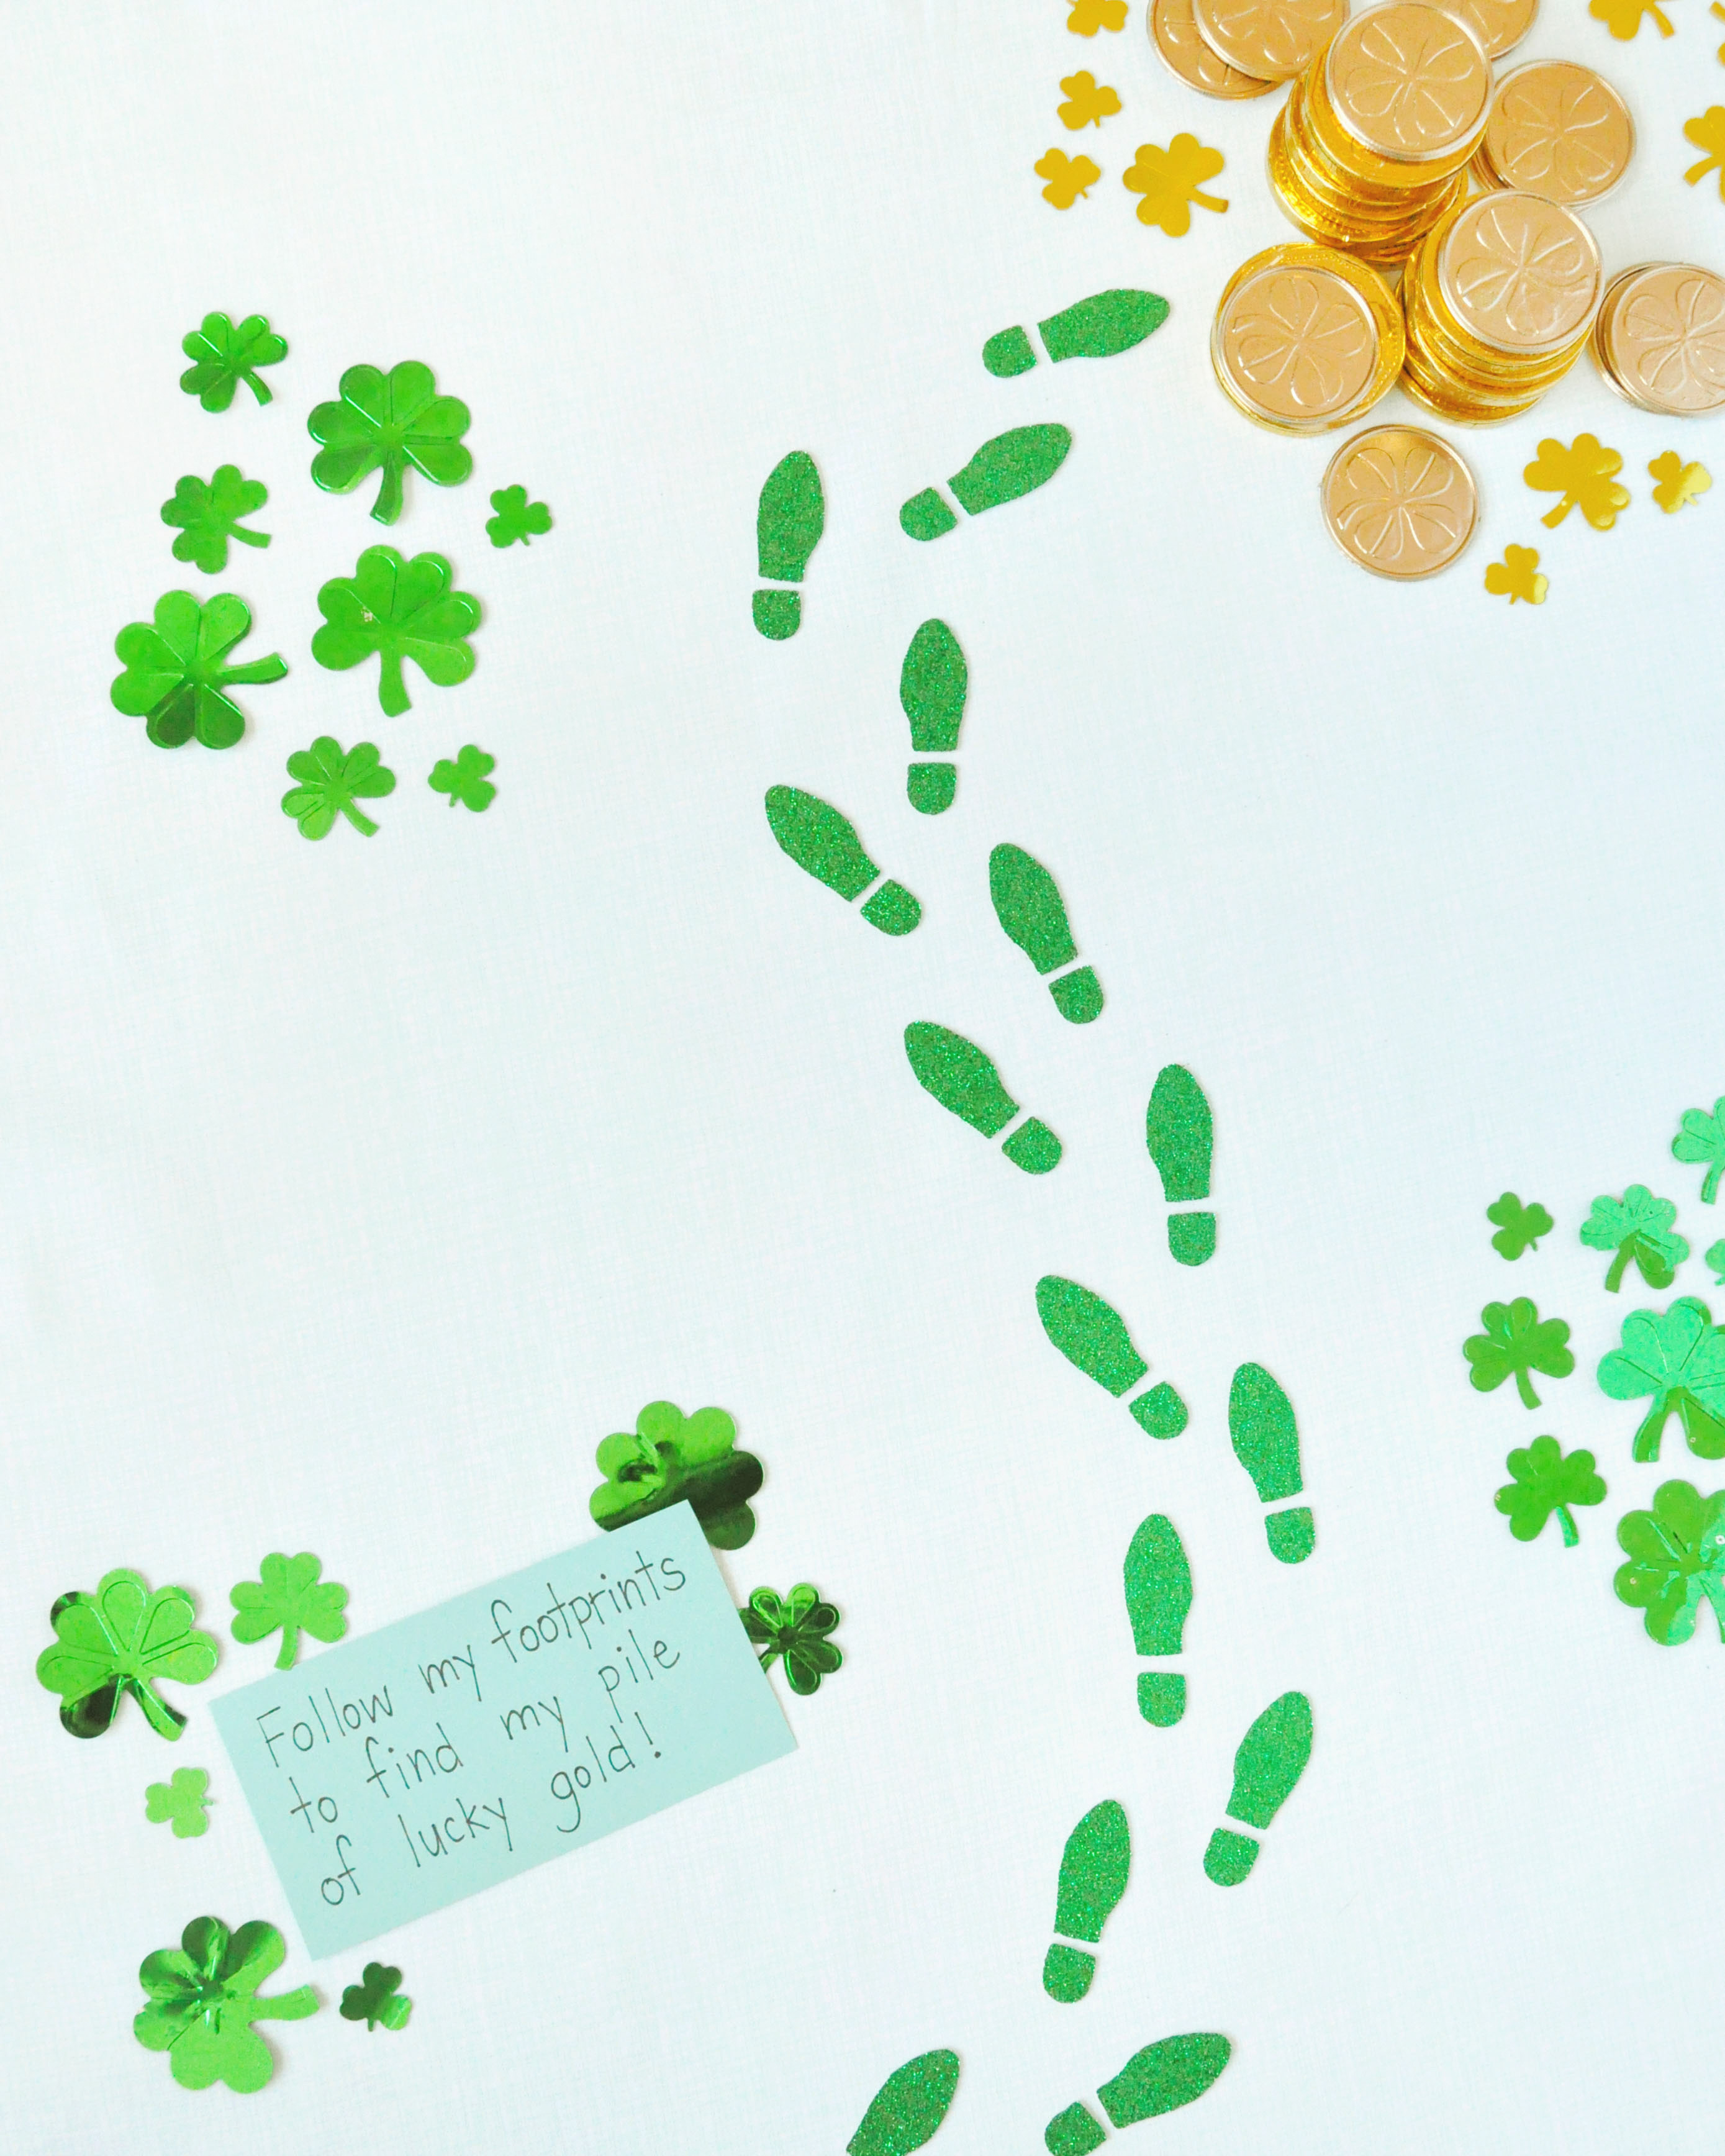 19 St. Patrick's Day Crafts and Decorations